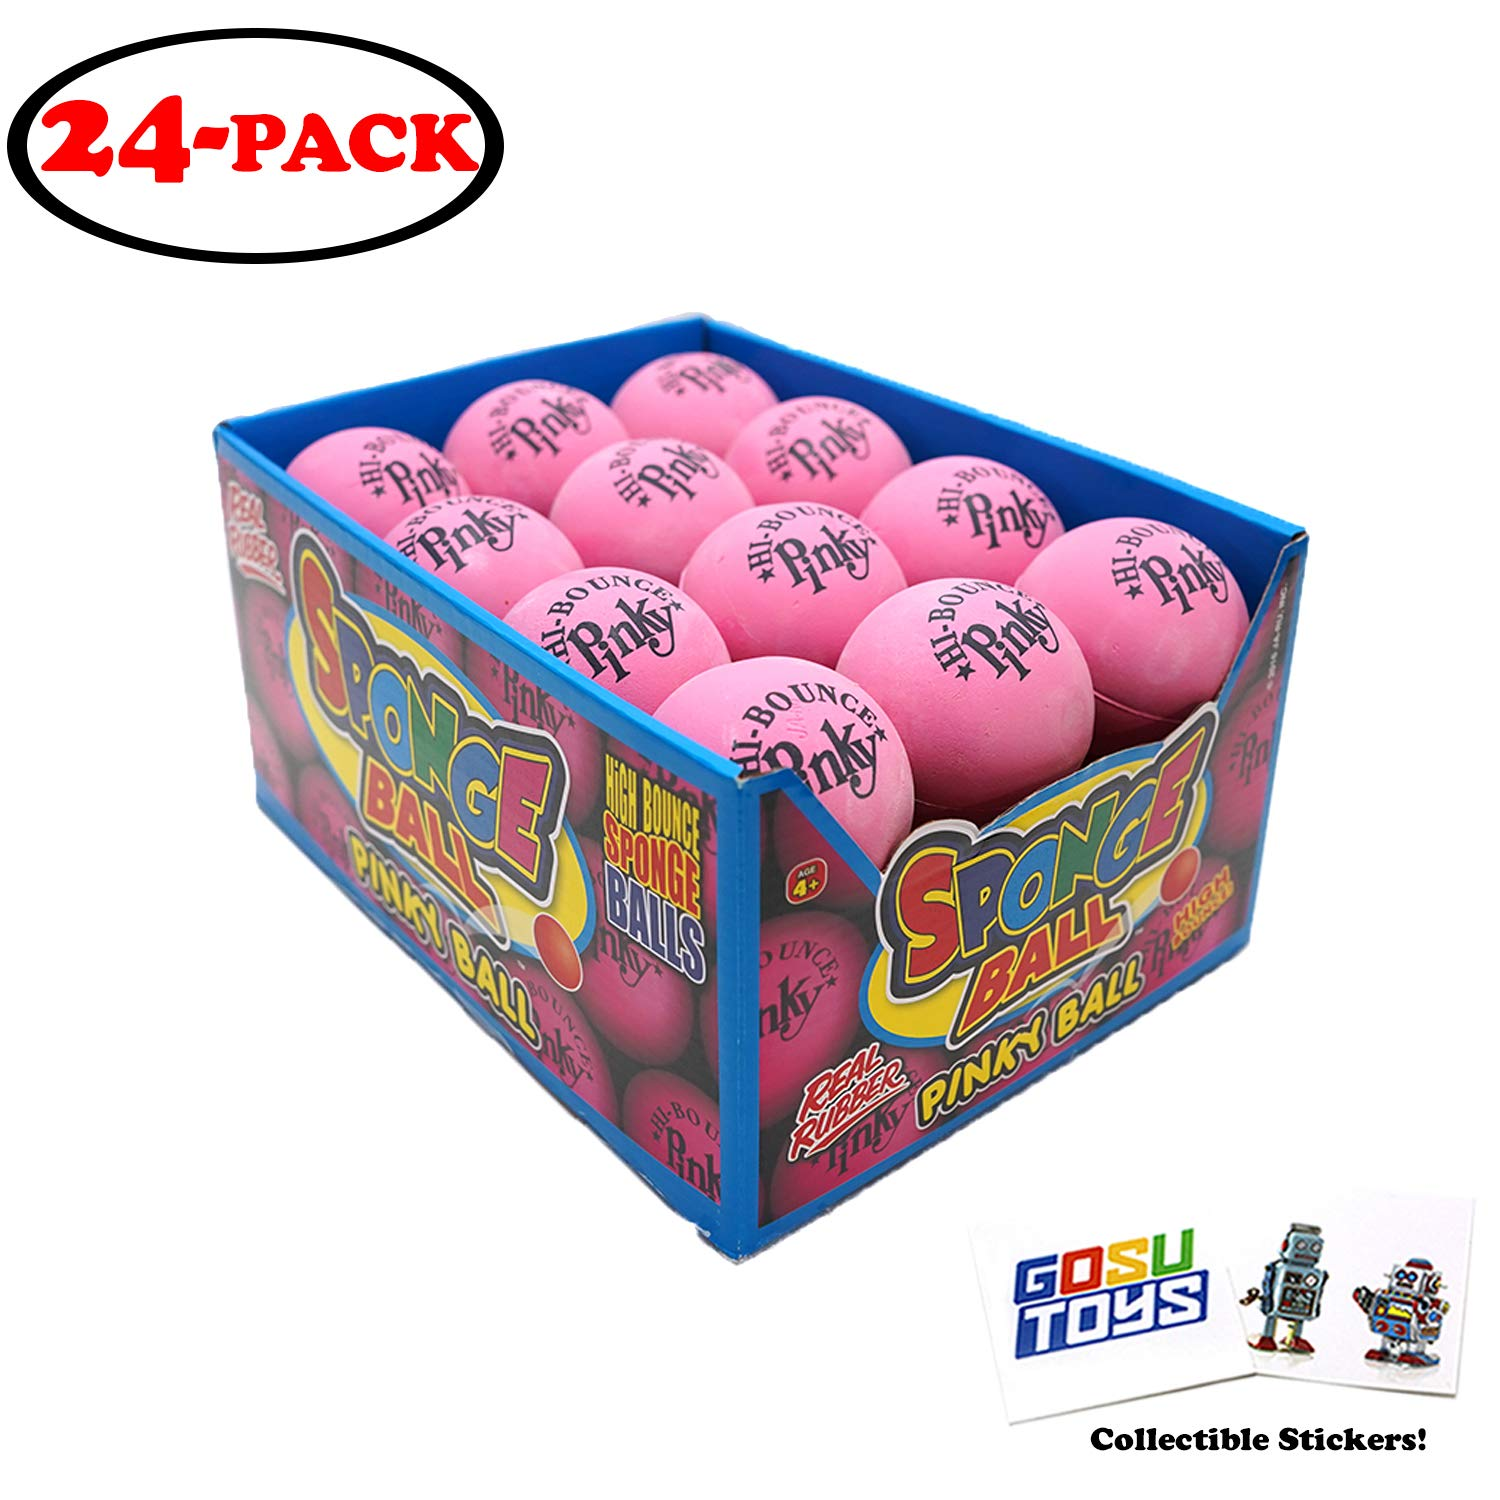 Original Hi Bounce Pinky Ball 2.5'' Large Pink Rubber Ball 24 Pack Bundle Multi Purpose Play Soft Ballet Dance Massage Ball Dog Ball with 2 GosuToys Stickers by Gosu Toys